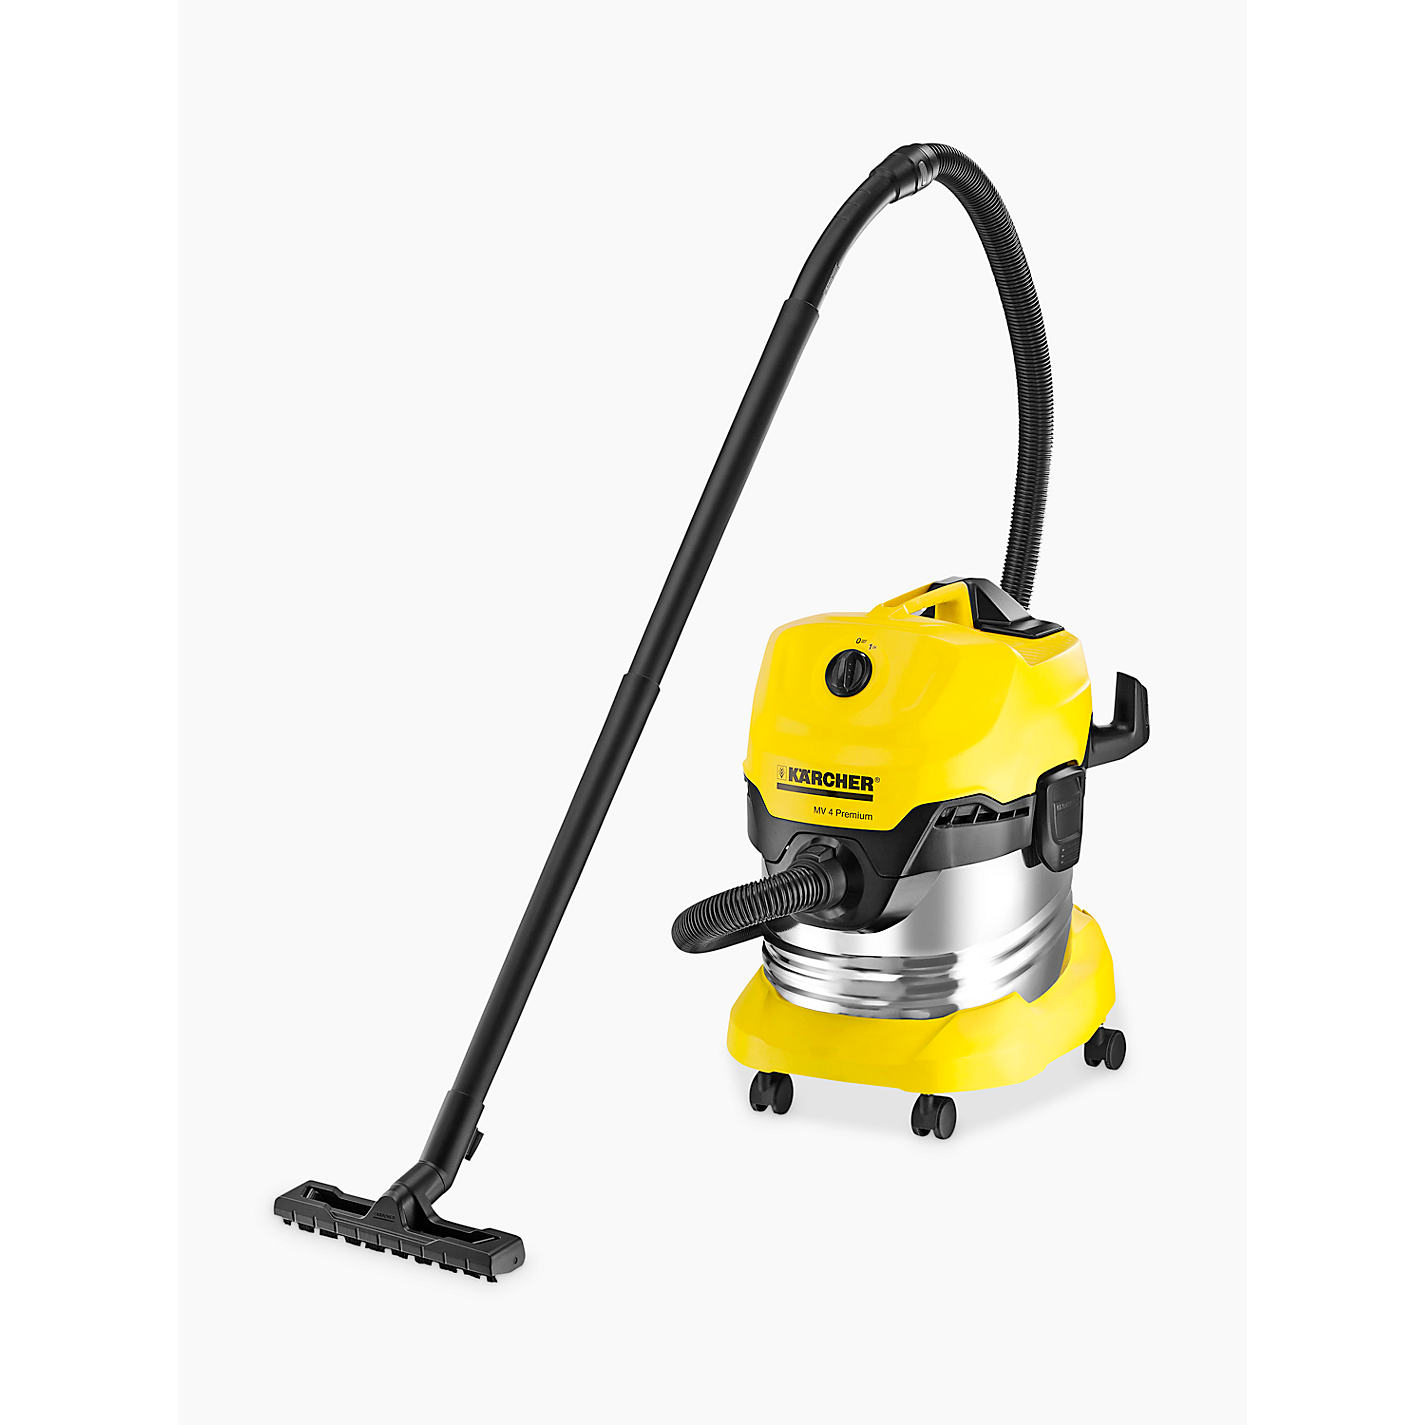 Krcher Karcher Vacuum Cleaner Vc With Krcher Cool Image Is Loading